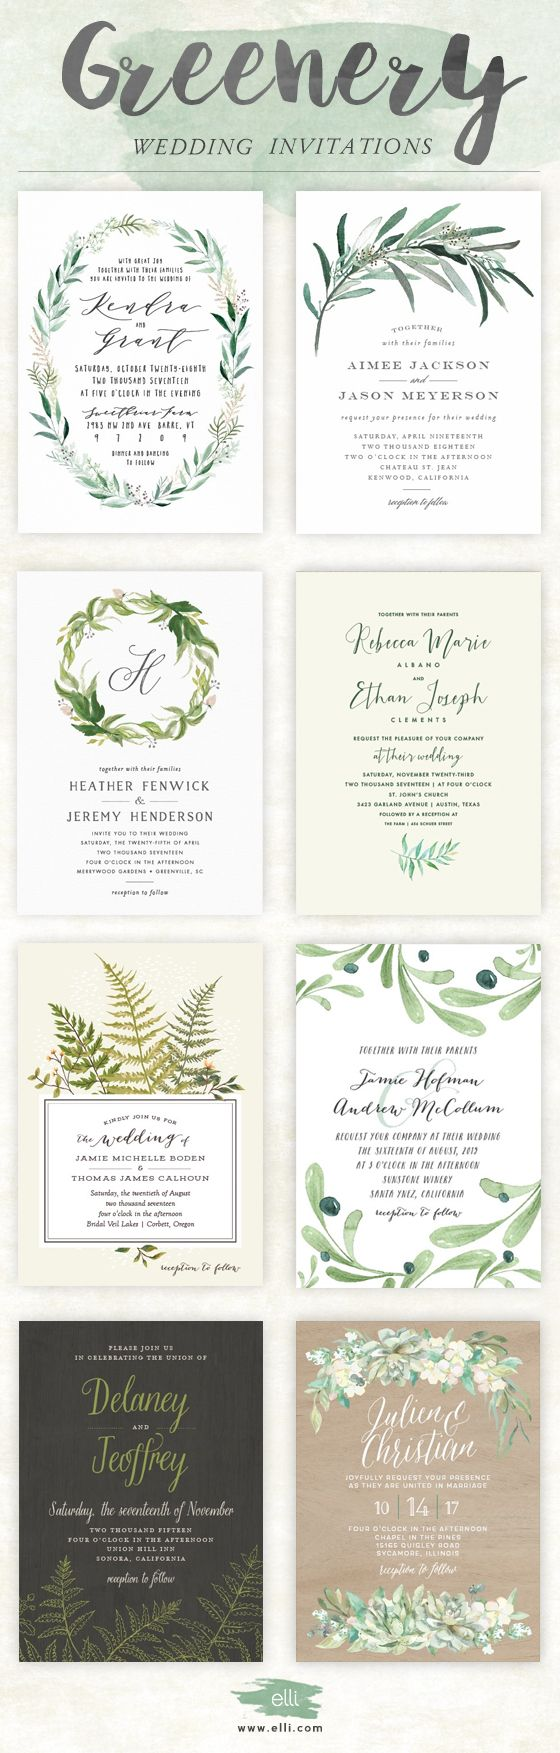 Trending for 2017 greenery wedding invitations from elli trending for 2017 greenery wedding invitations from elli wedding bells pinterest greenery weddings and wedding stopboris Image collections